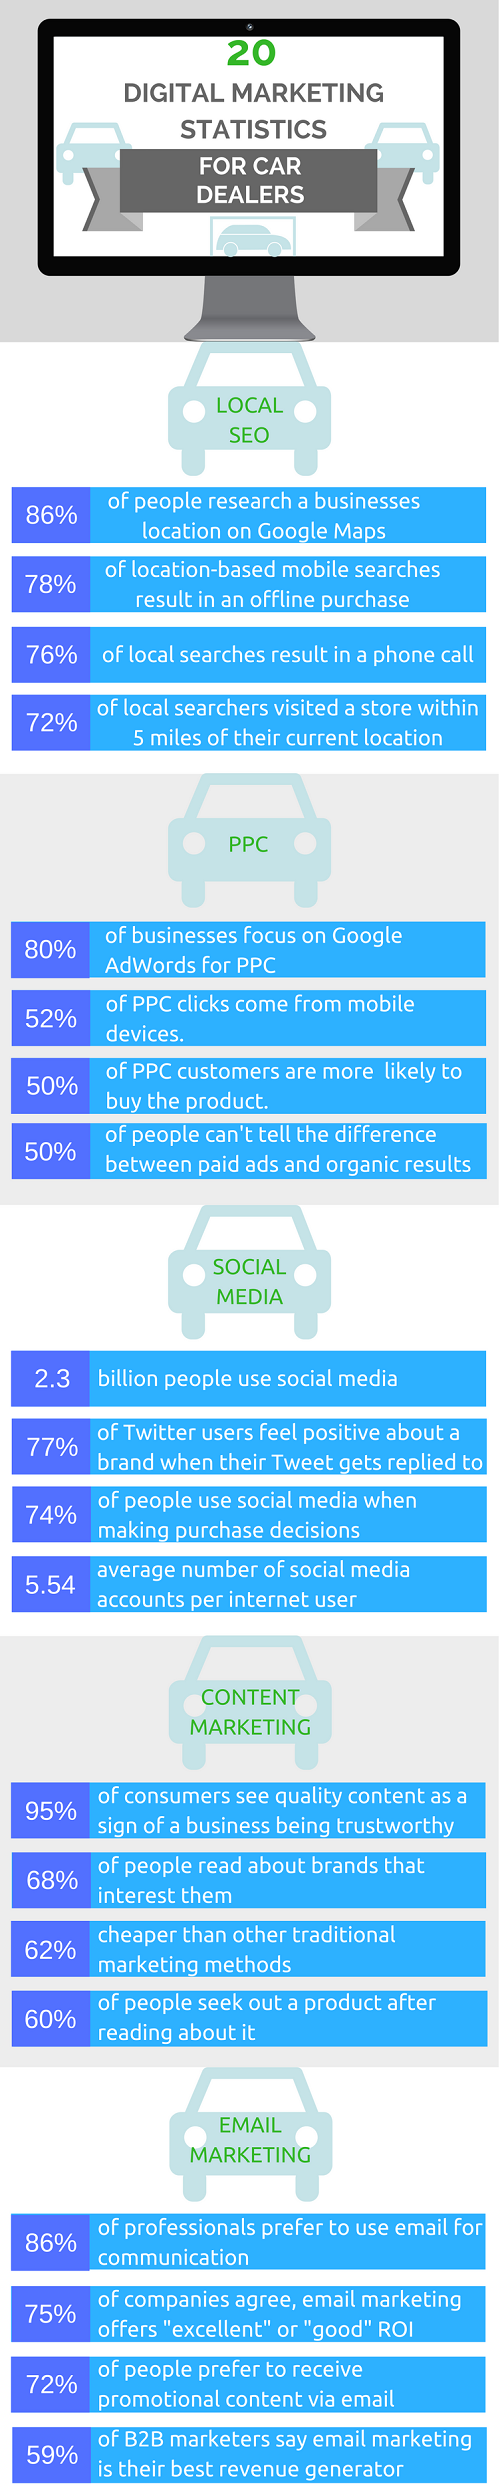 20 Digital Marketing Statistics For Car Dealers